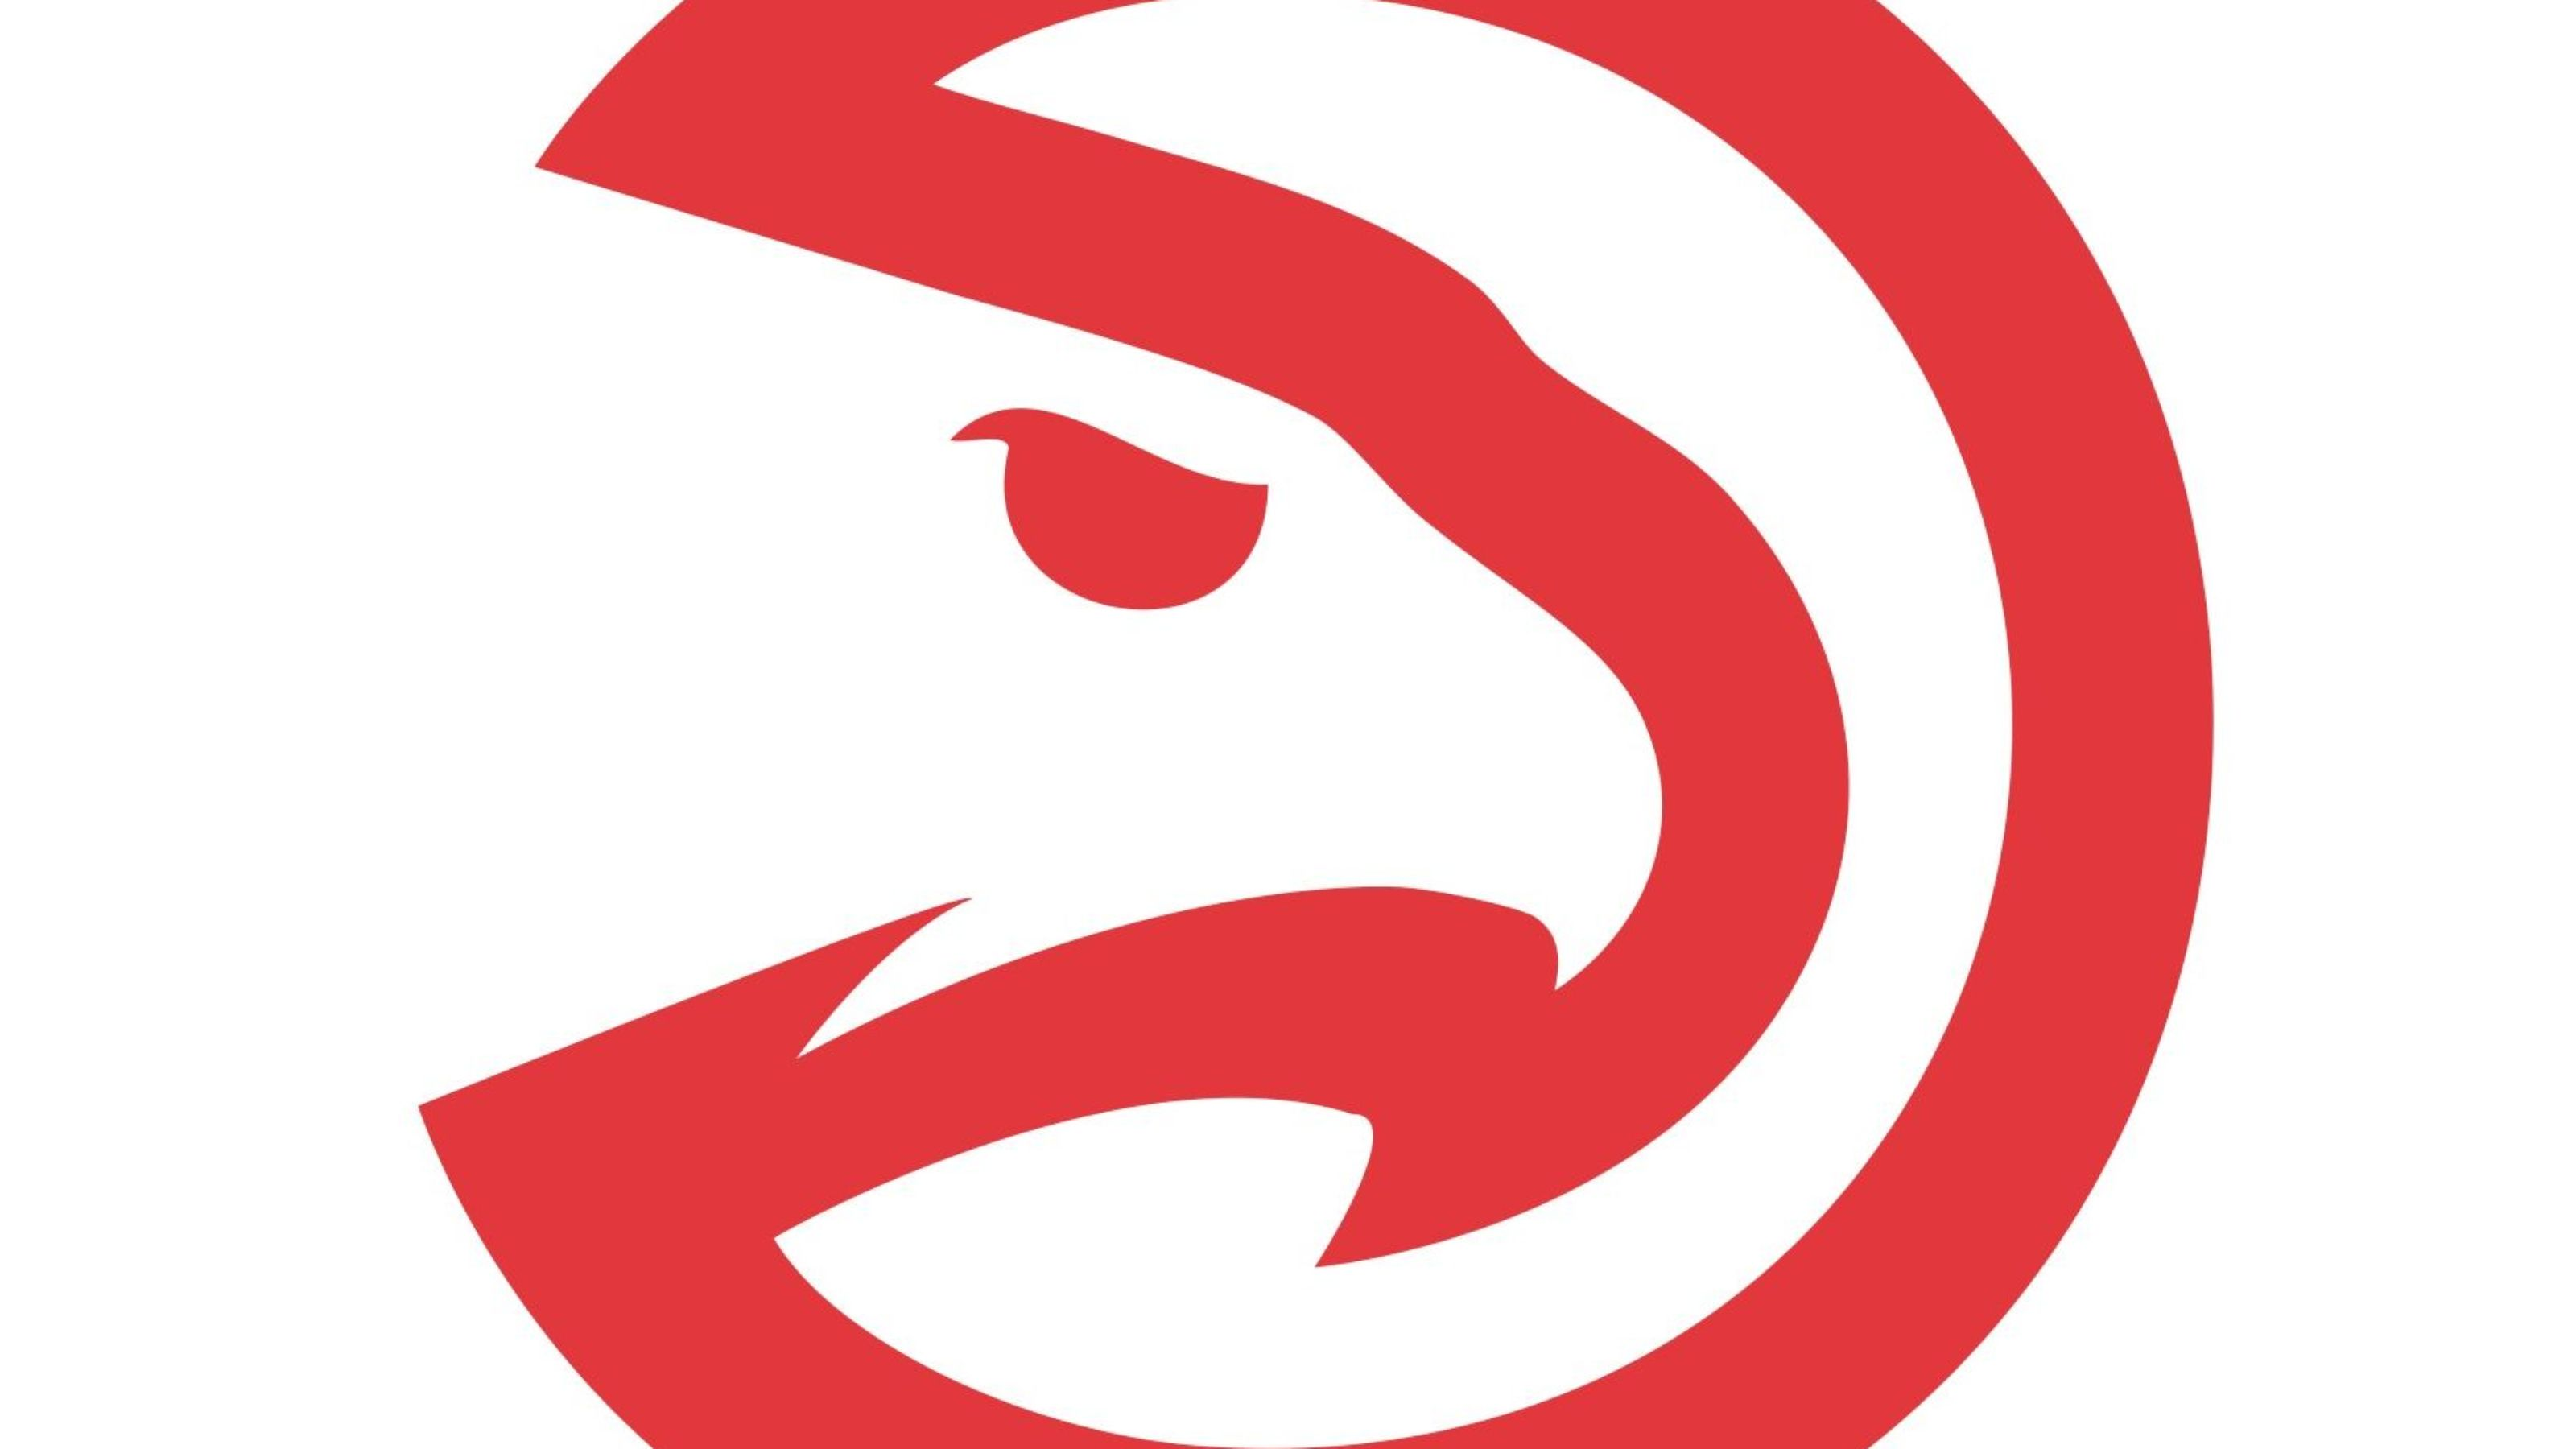 Atlanta Hawks Wallpaper Hd Atlanta Hawks Wallpaper Hd Pixelstalk Net